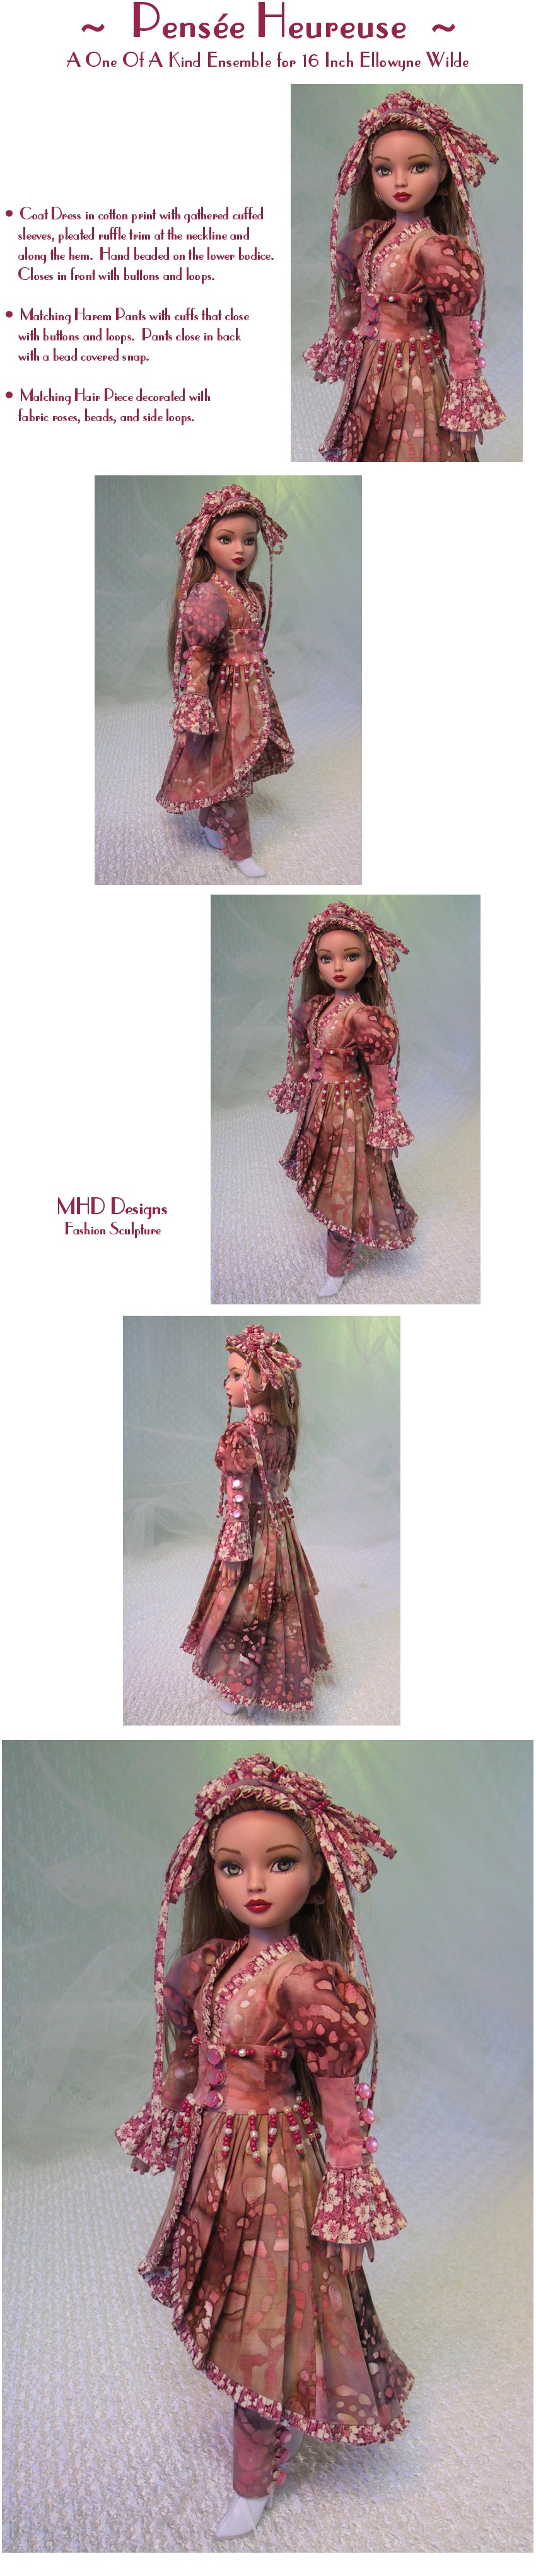 Happy Thought  - a One Of A Kind Ensemble by MHD Designs